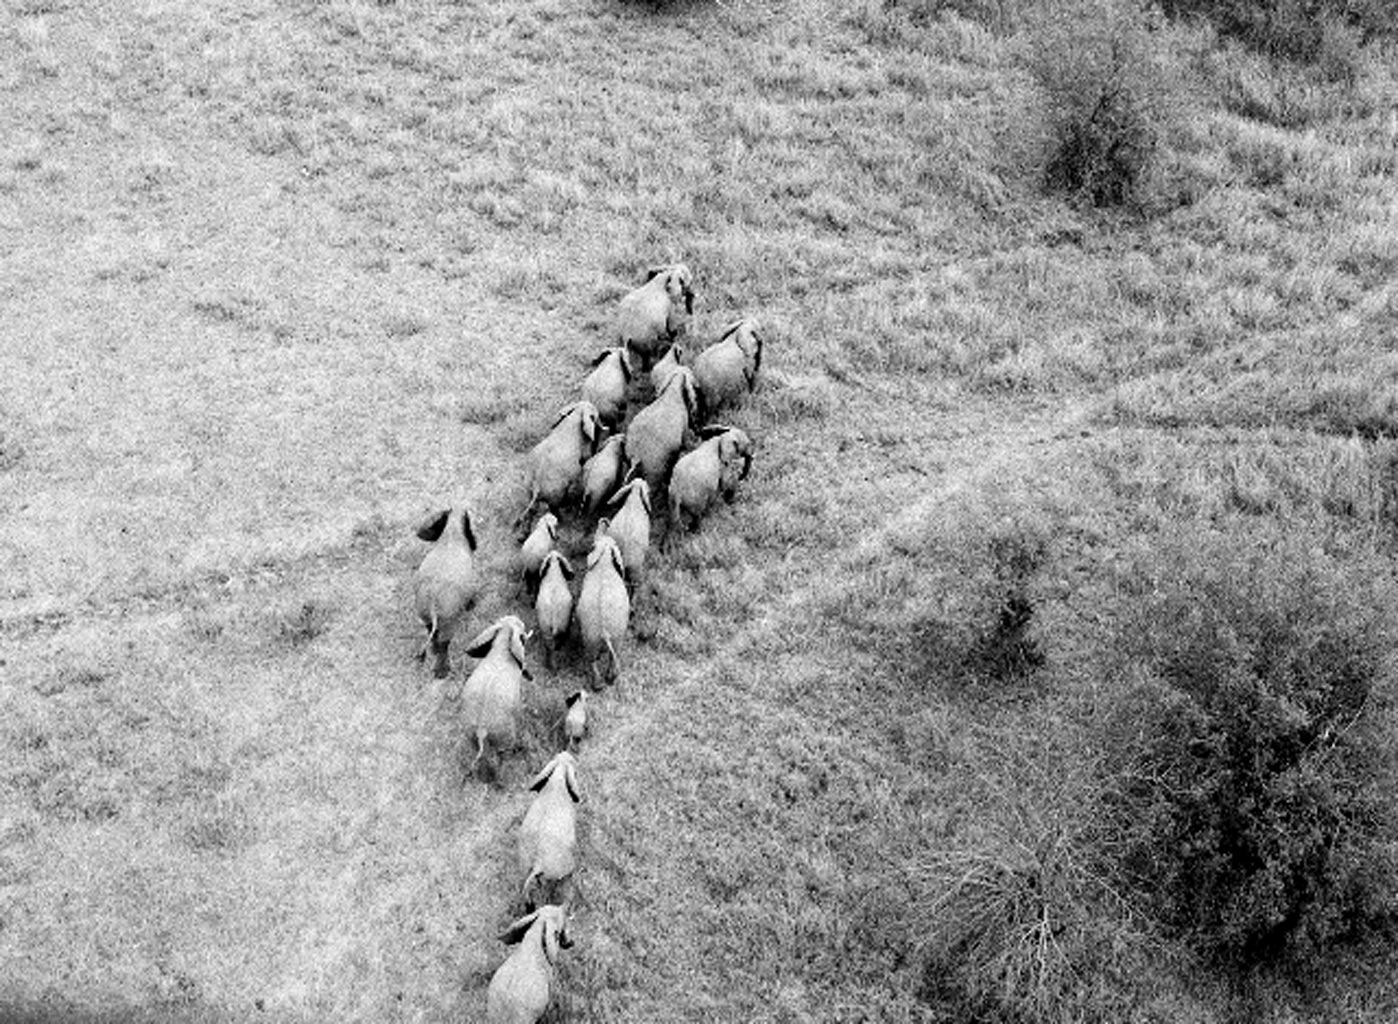 elephants in Tanzania Africa